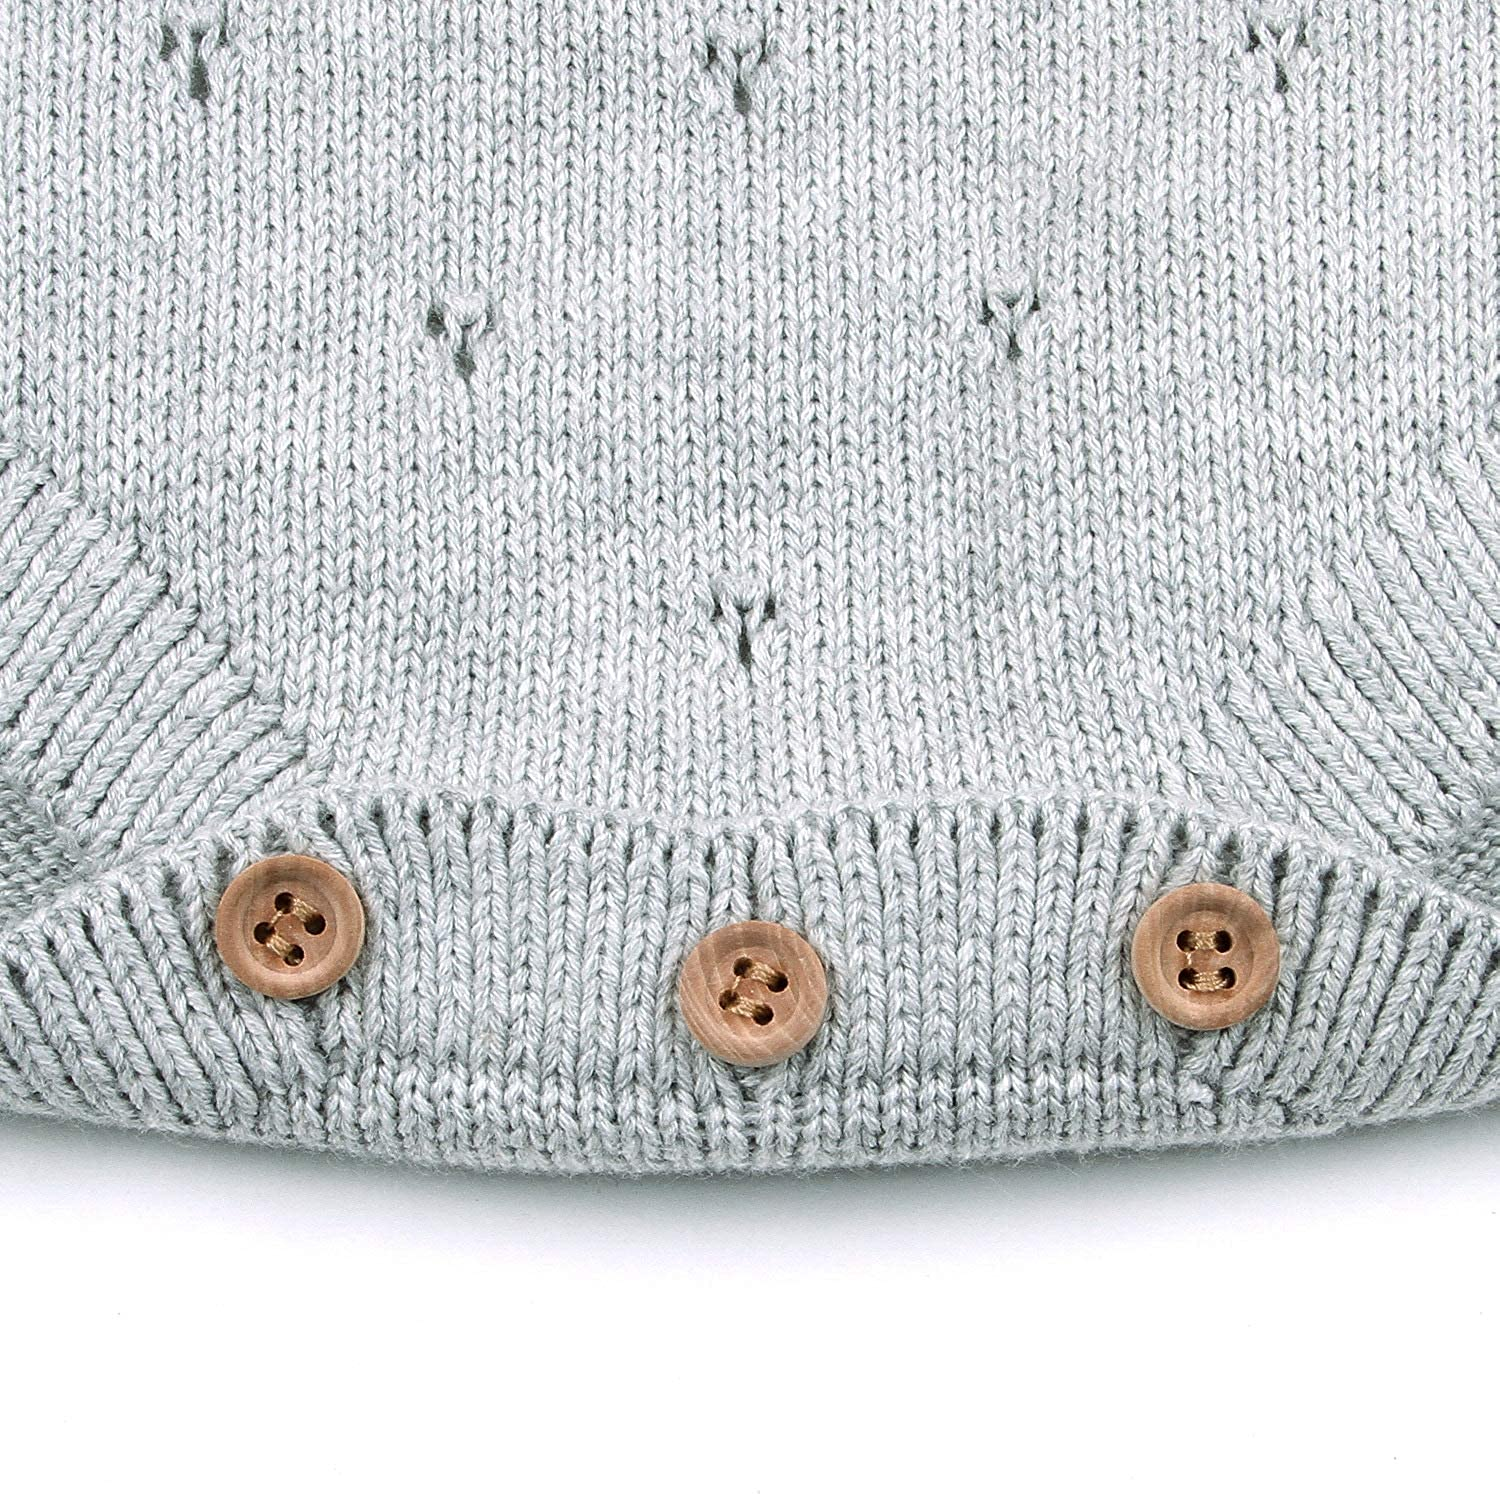 Simplee kids Newborn Baby Girls Knitted Sweater Romper Jumpsuit Fall Winter Clothes for Toddler 12M-3T.